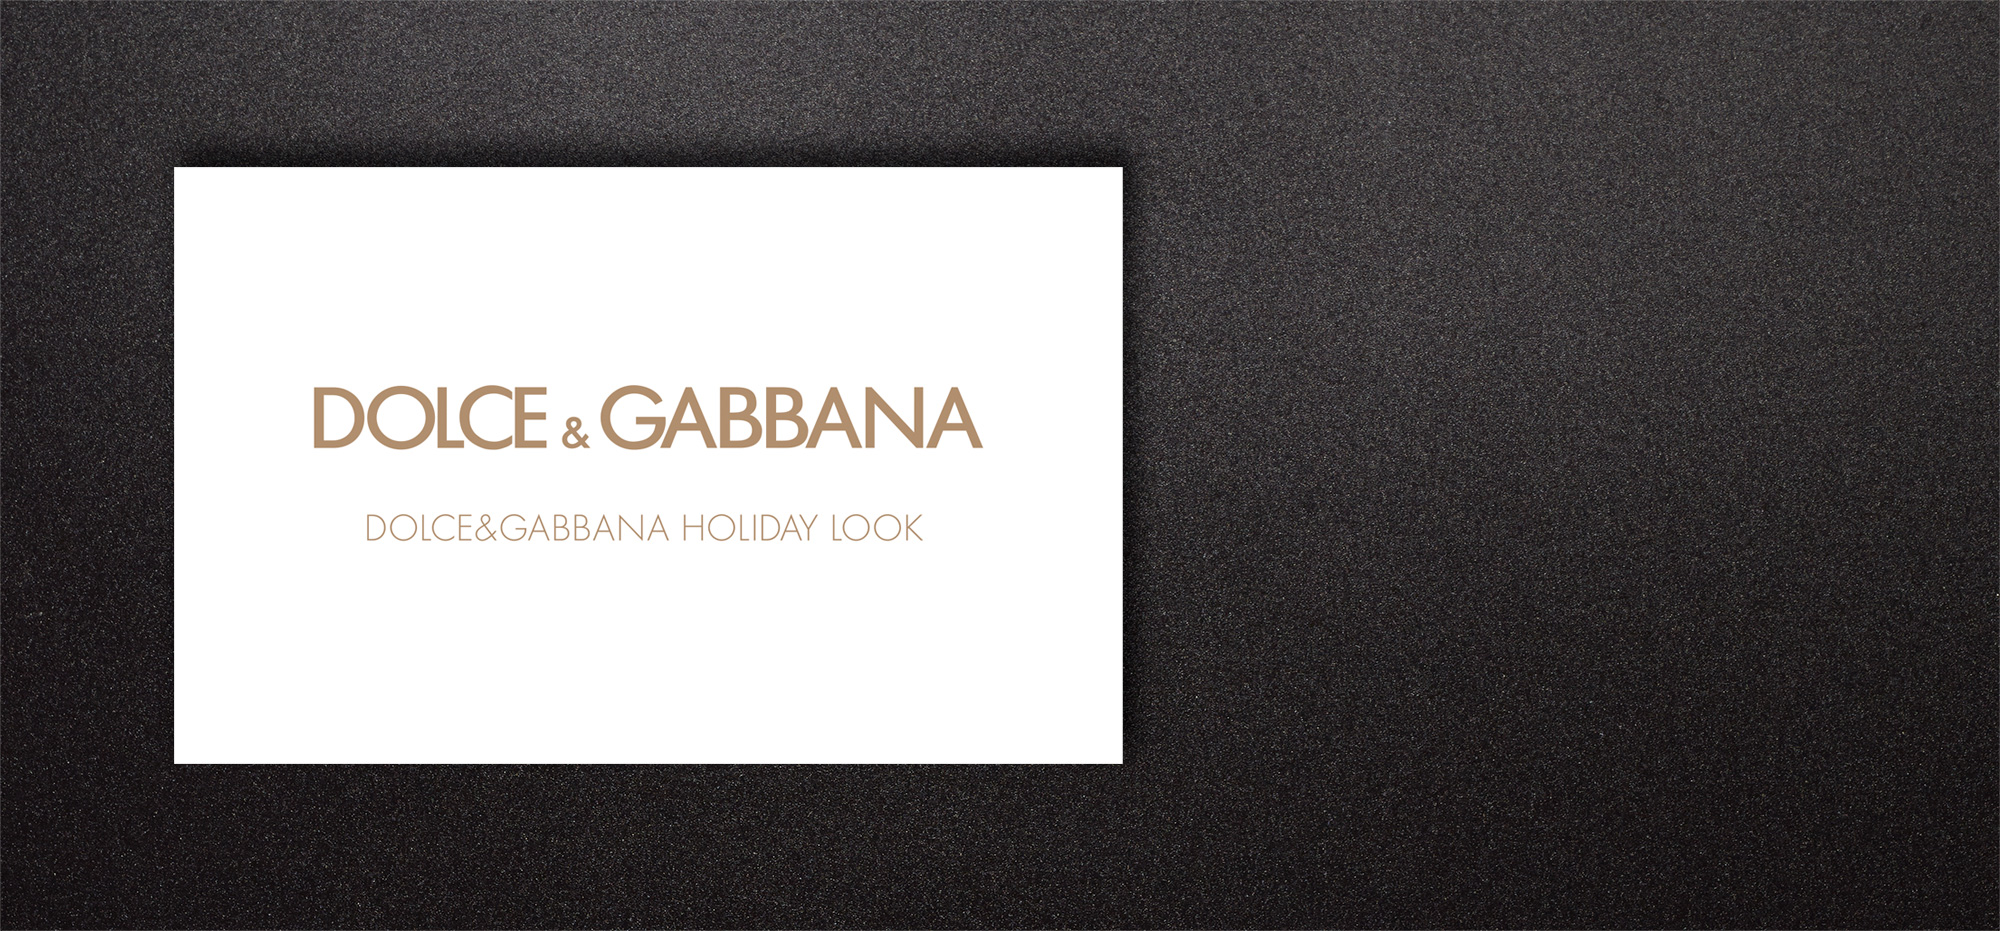 dolce&gabbana-invitation-02A